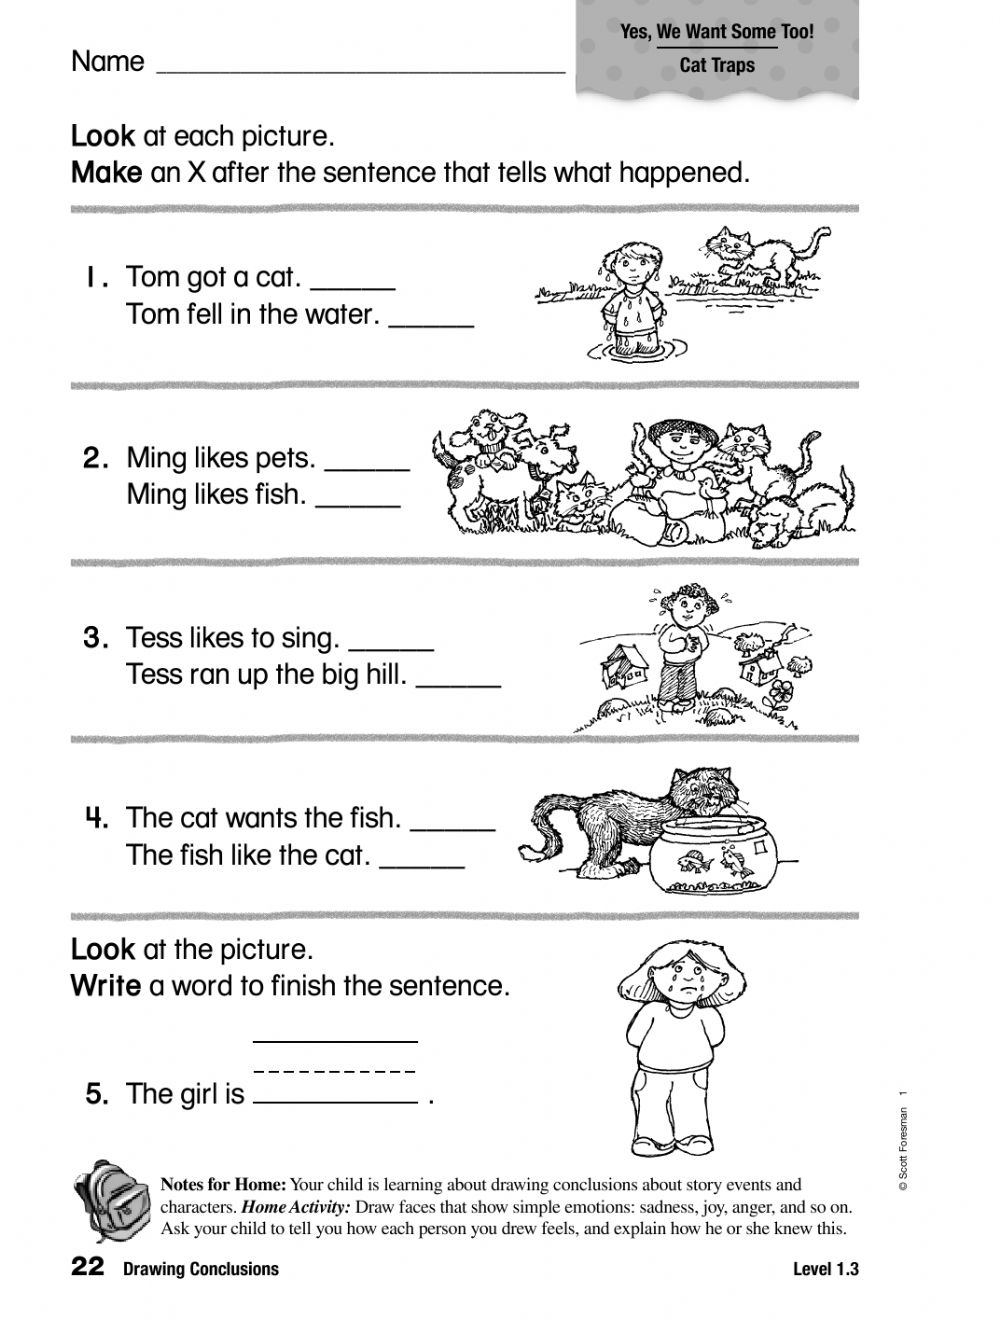 Drawing Conclusions interactive worksheet